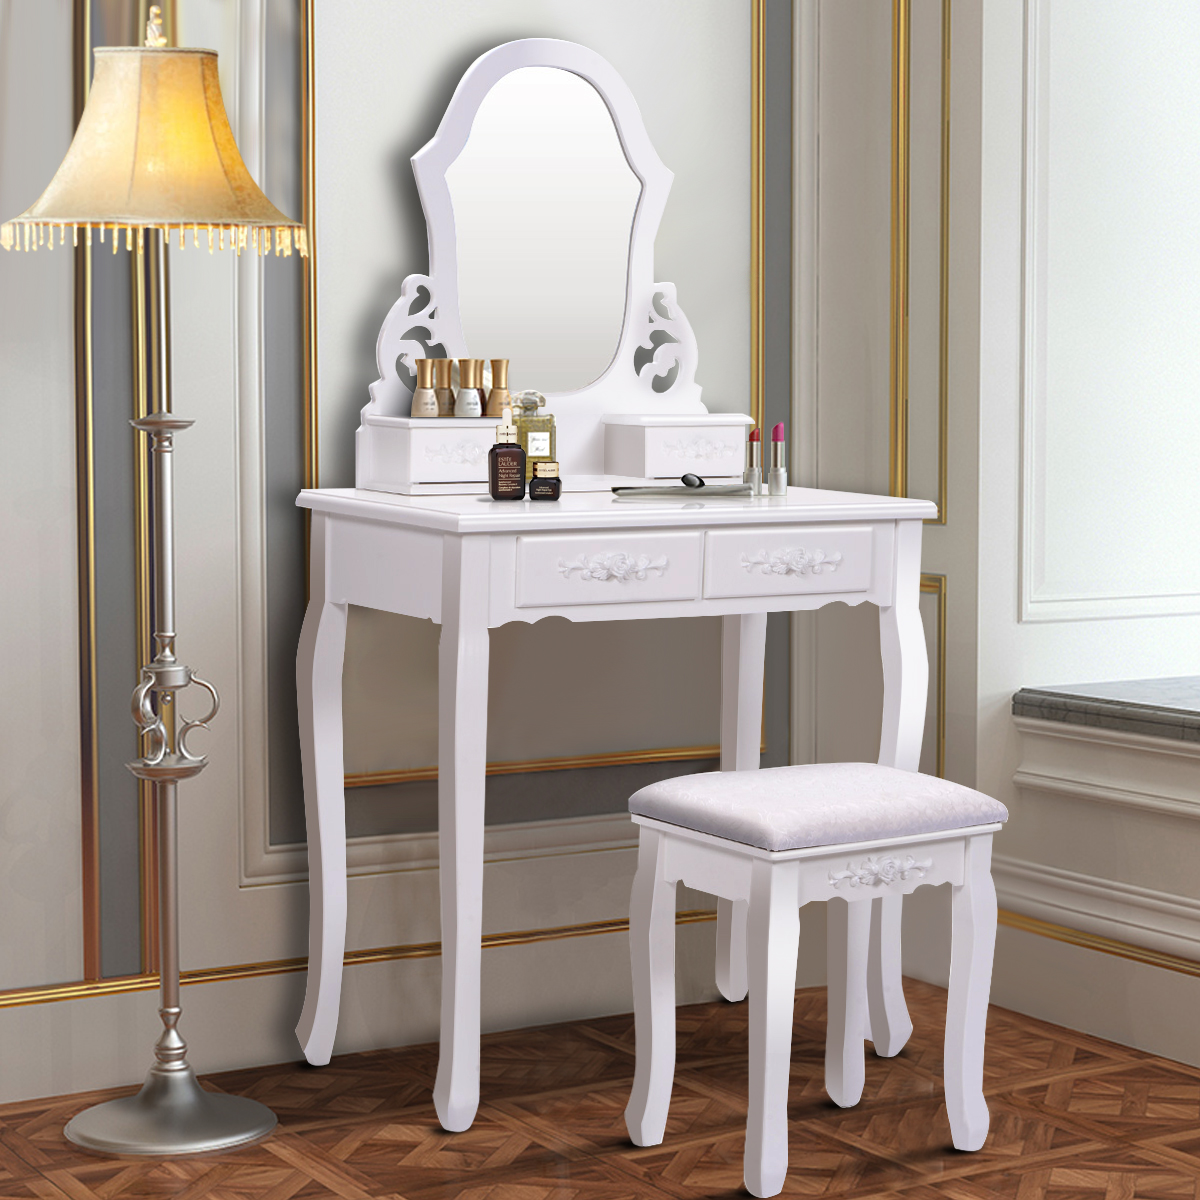 Costway White Vanity Jewelry Wooden Makeup Dressing Table Set bathroom  W/Stool Mirror & 4 Drawer